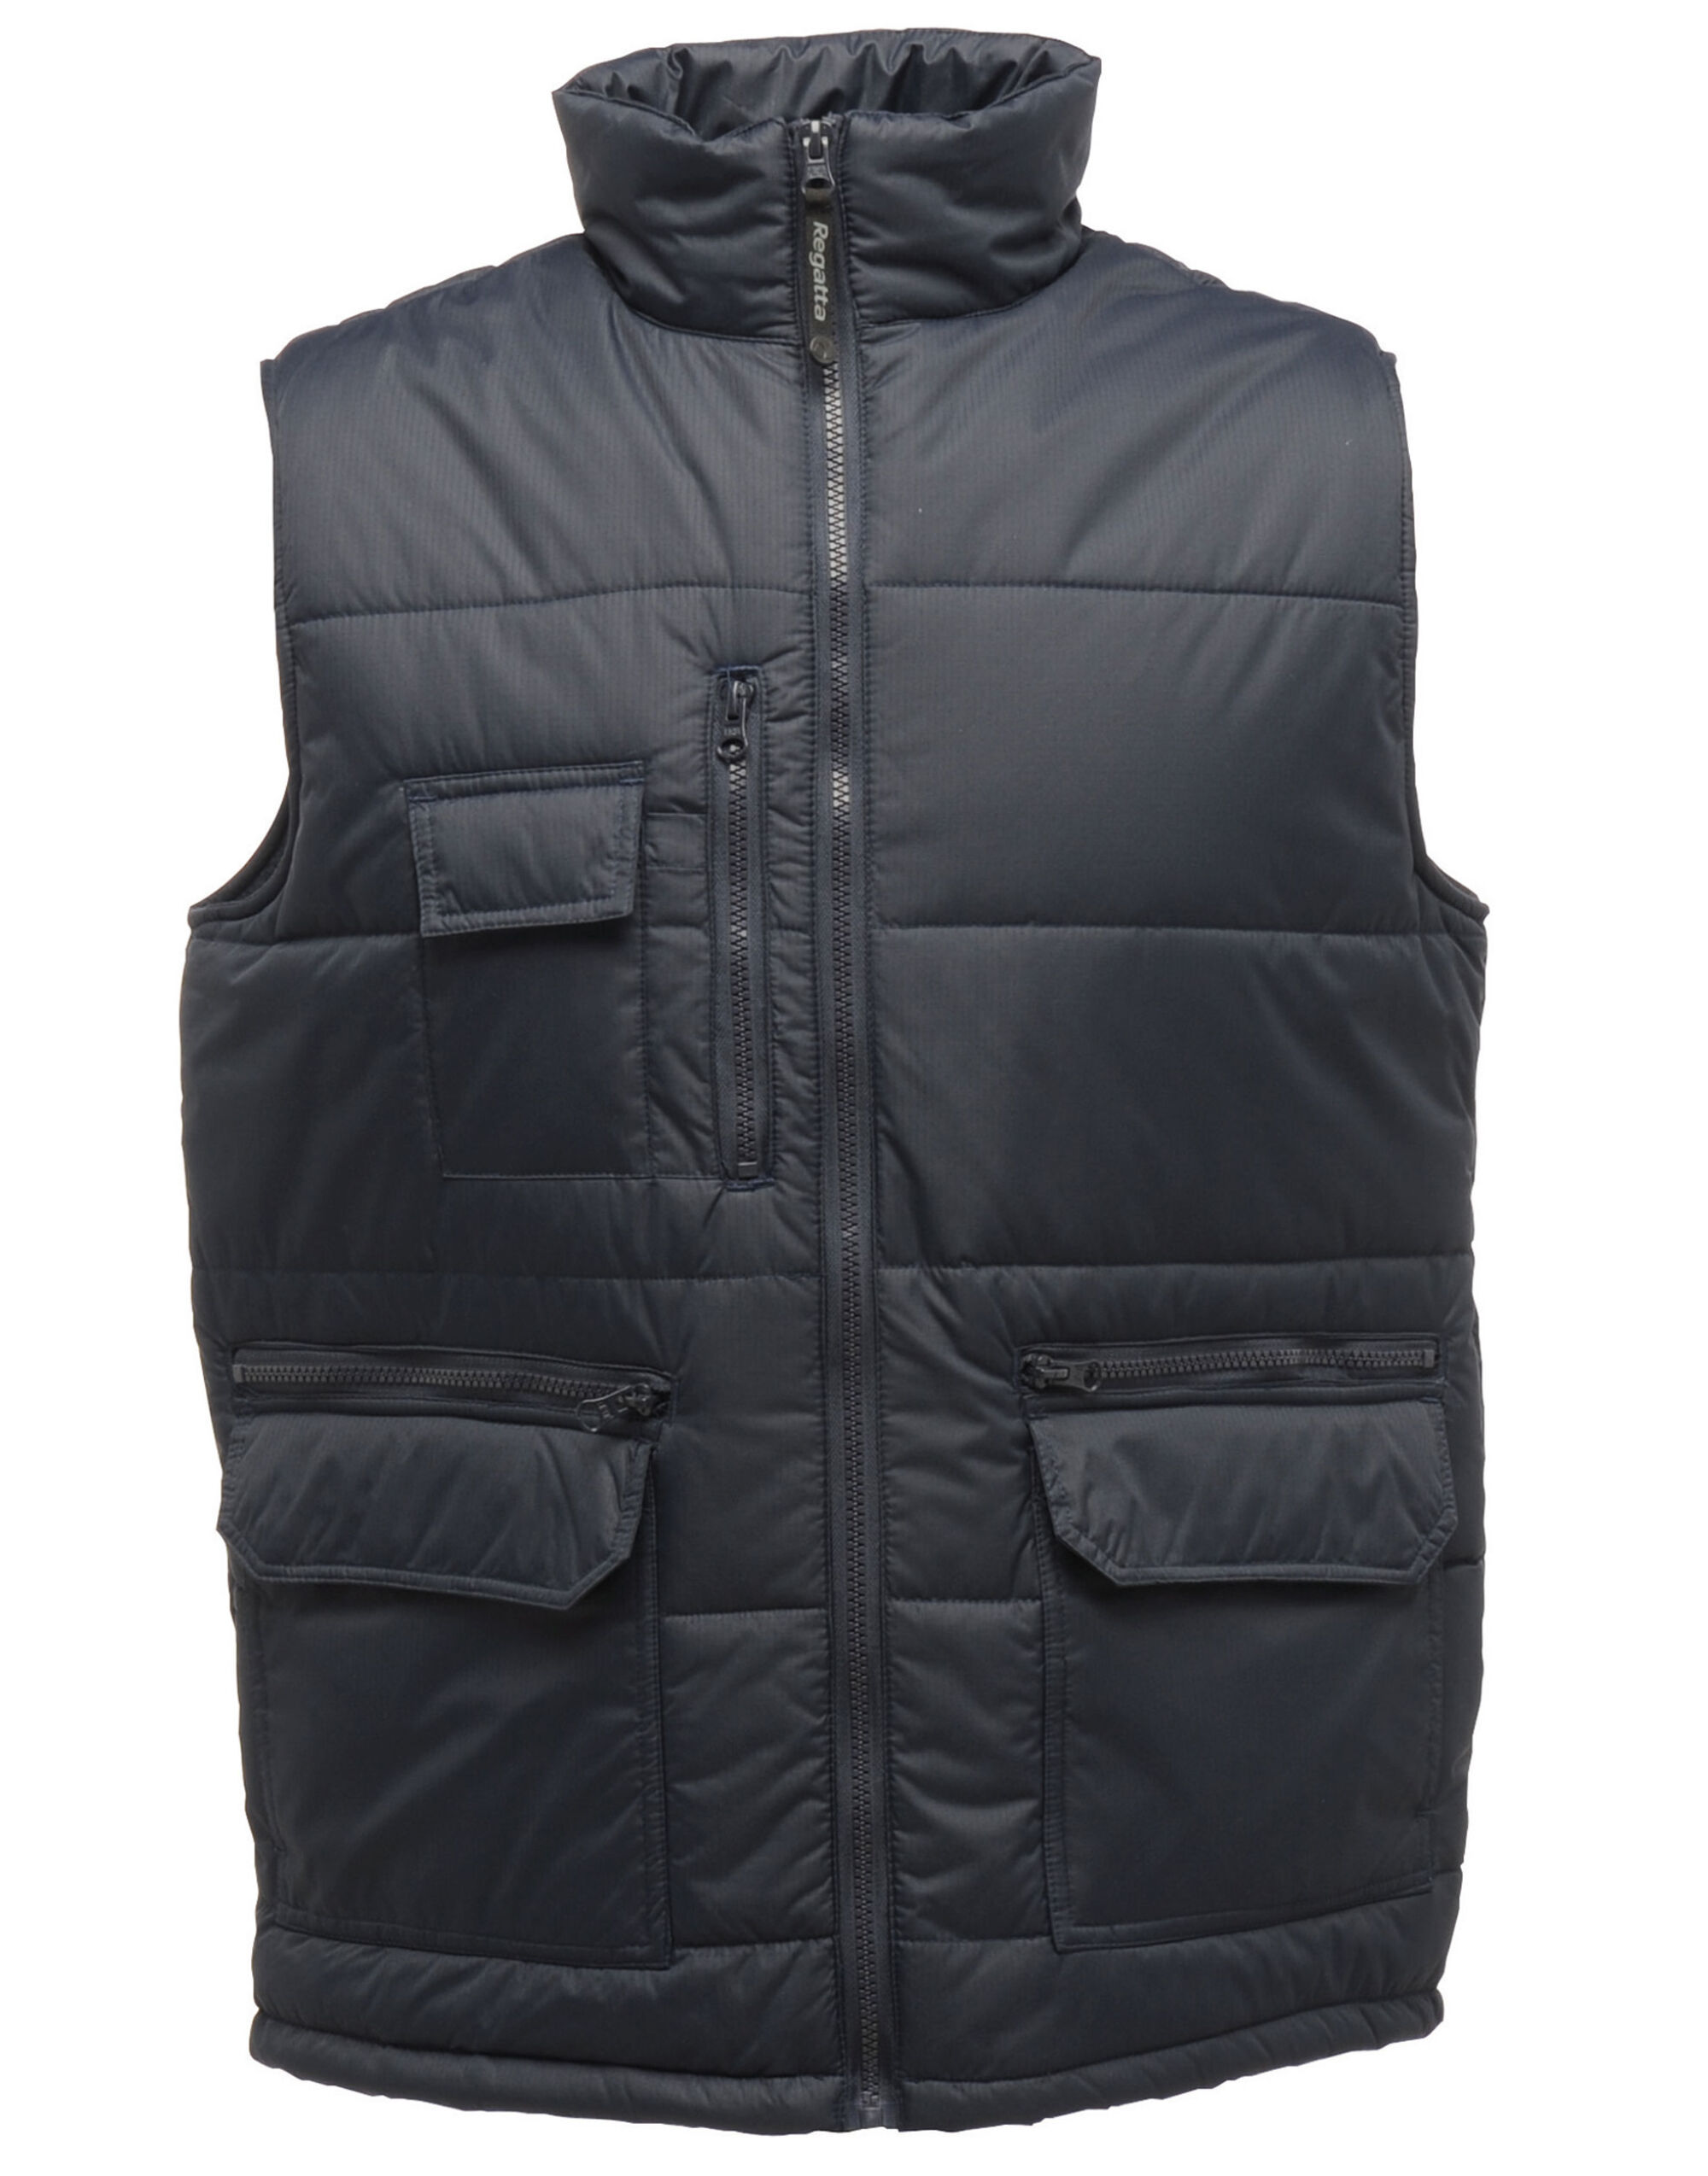 Steller Insulated Bodywarmer